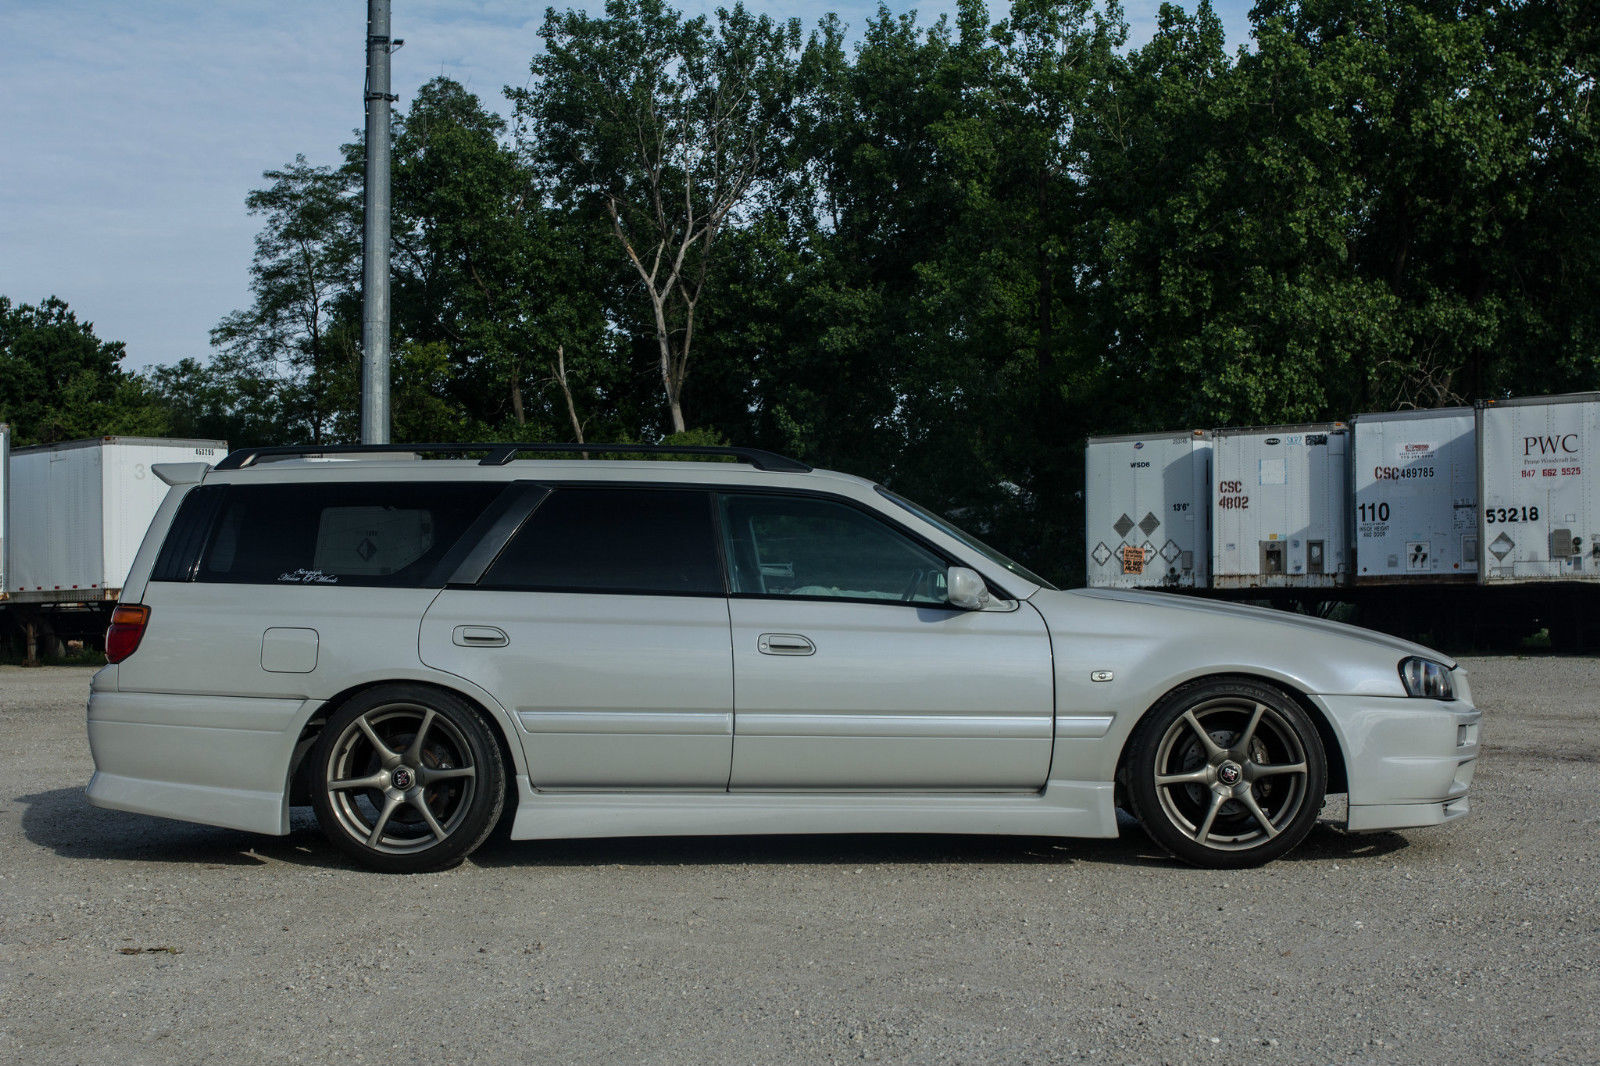 2009 Nissan Maxima For Sale >> Fake R34 Nisan GT-R Wagon for Sale Is Based on JDM Stagea - autoevolution